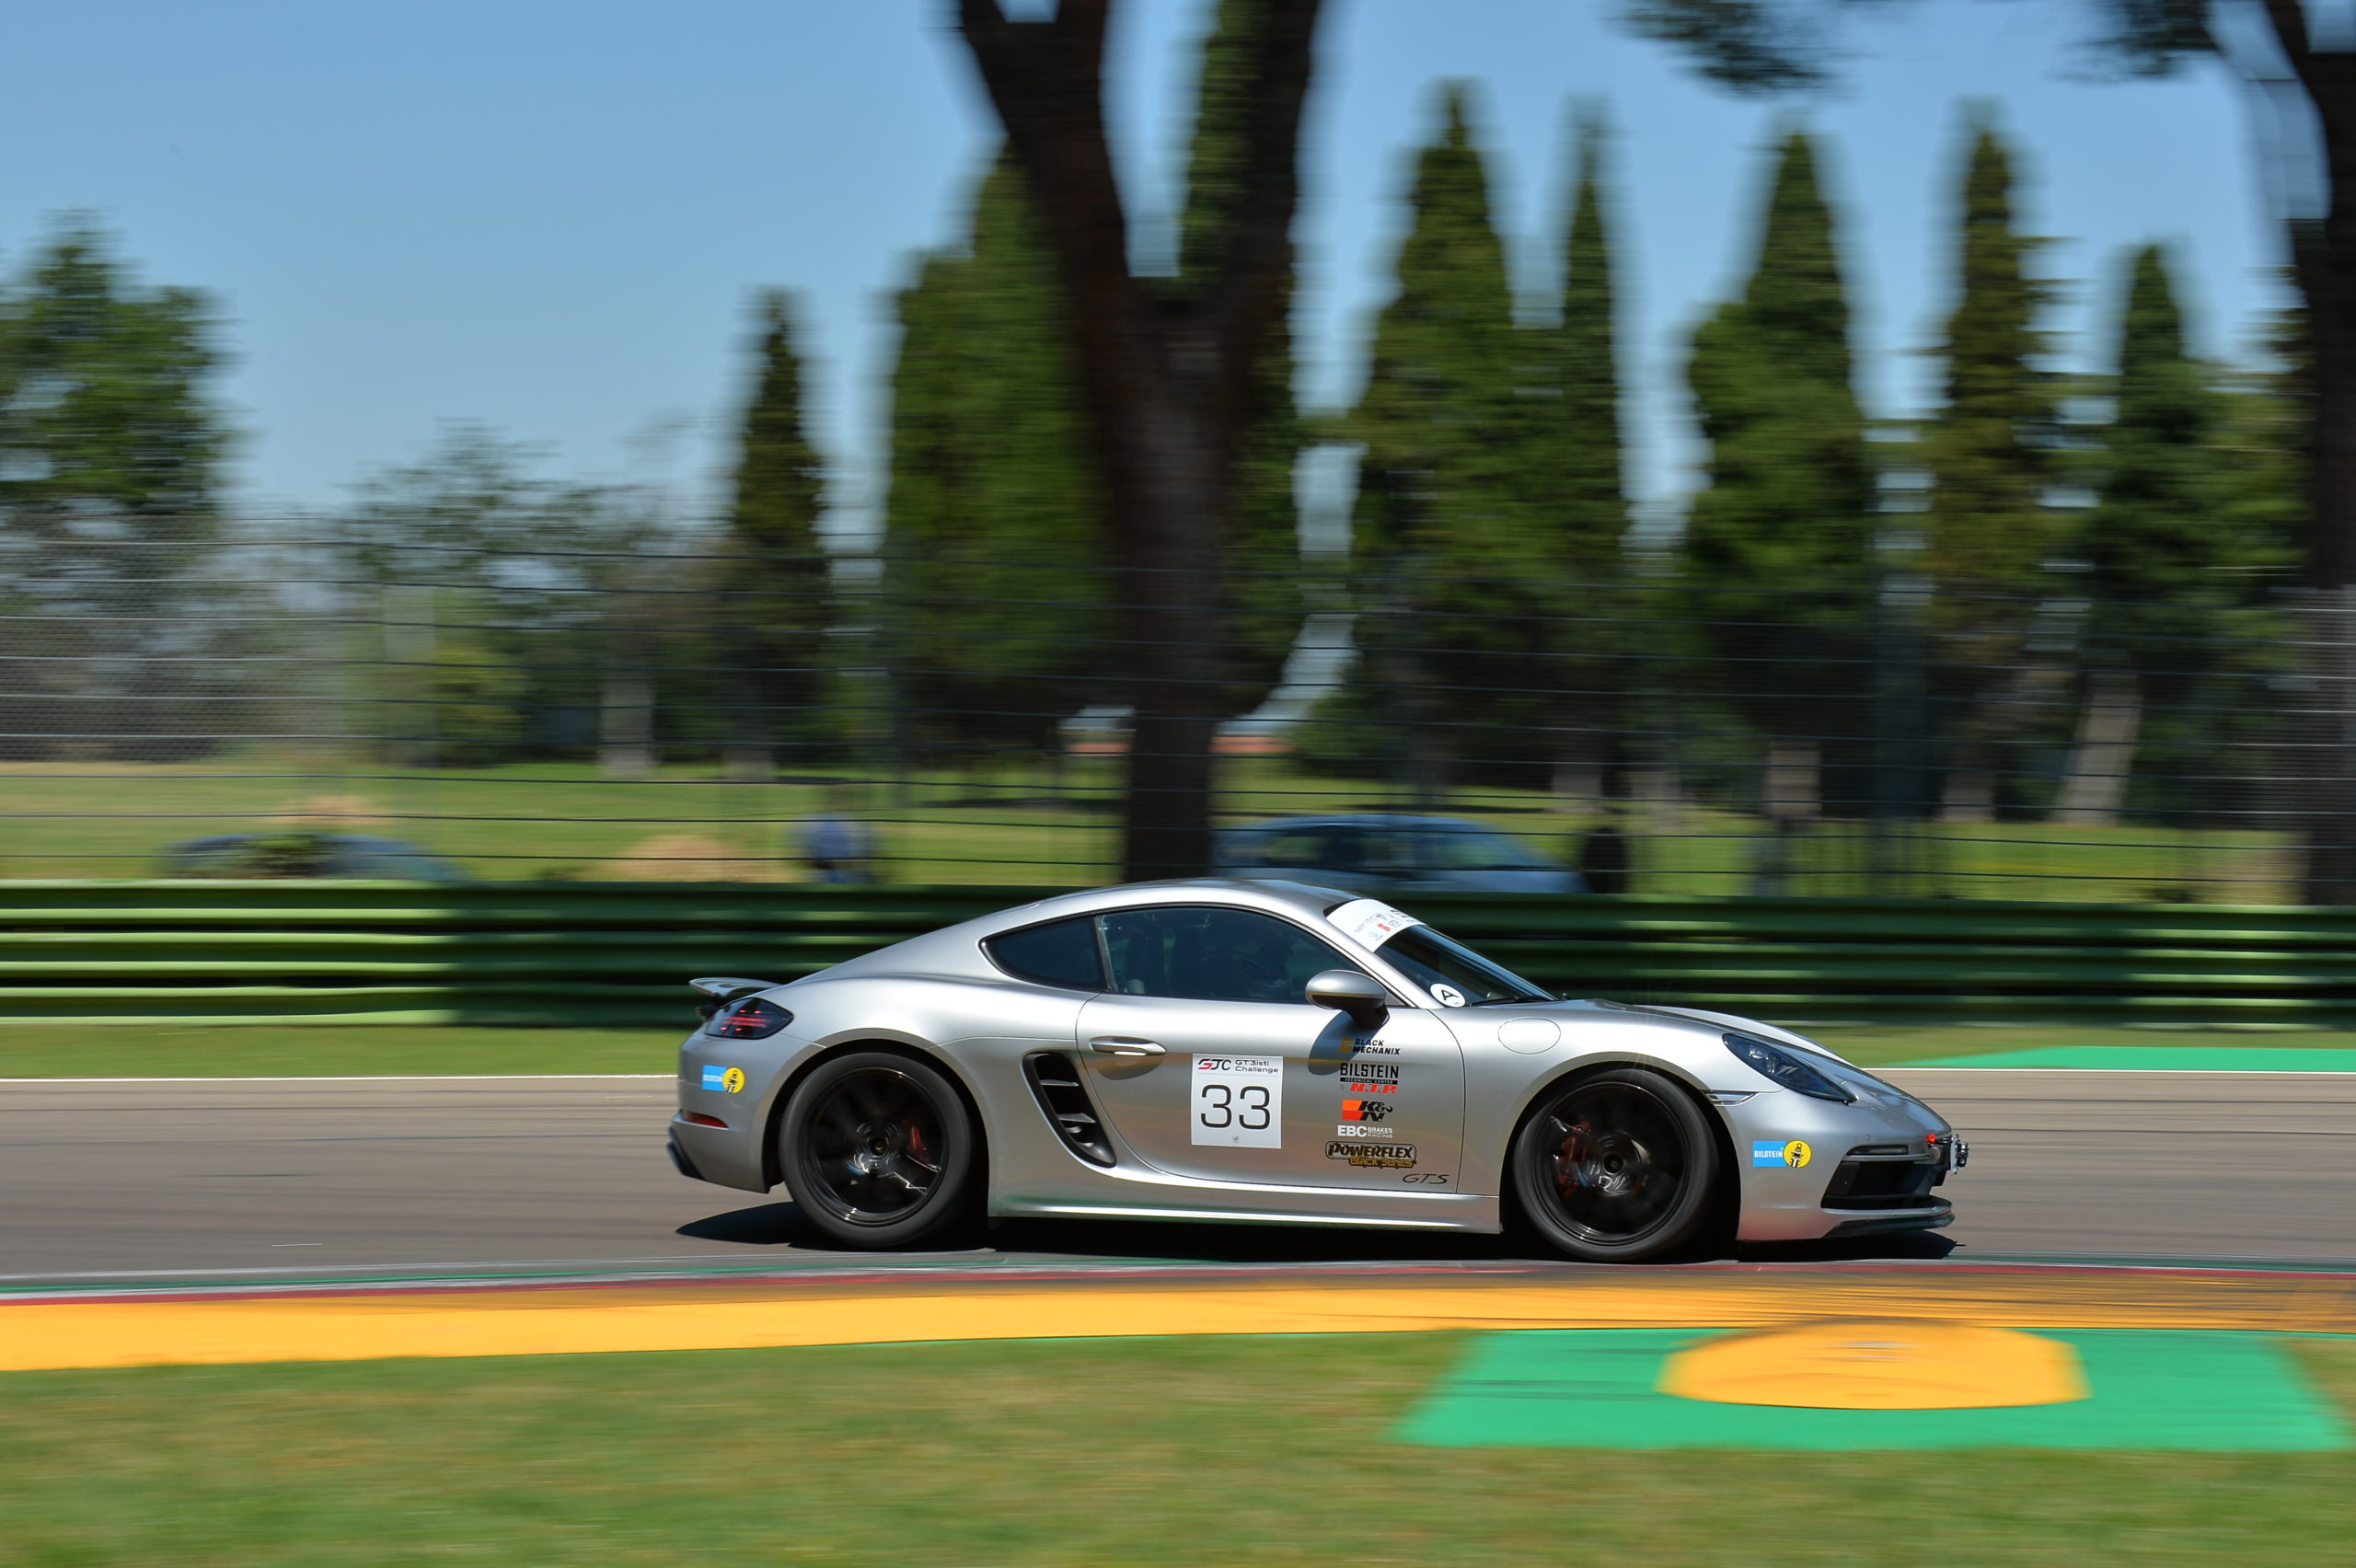 GT3 Challenge Racer Leads the Pack with RP-X-Equipped Porsche Cayman